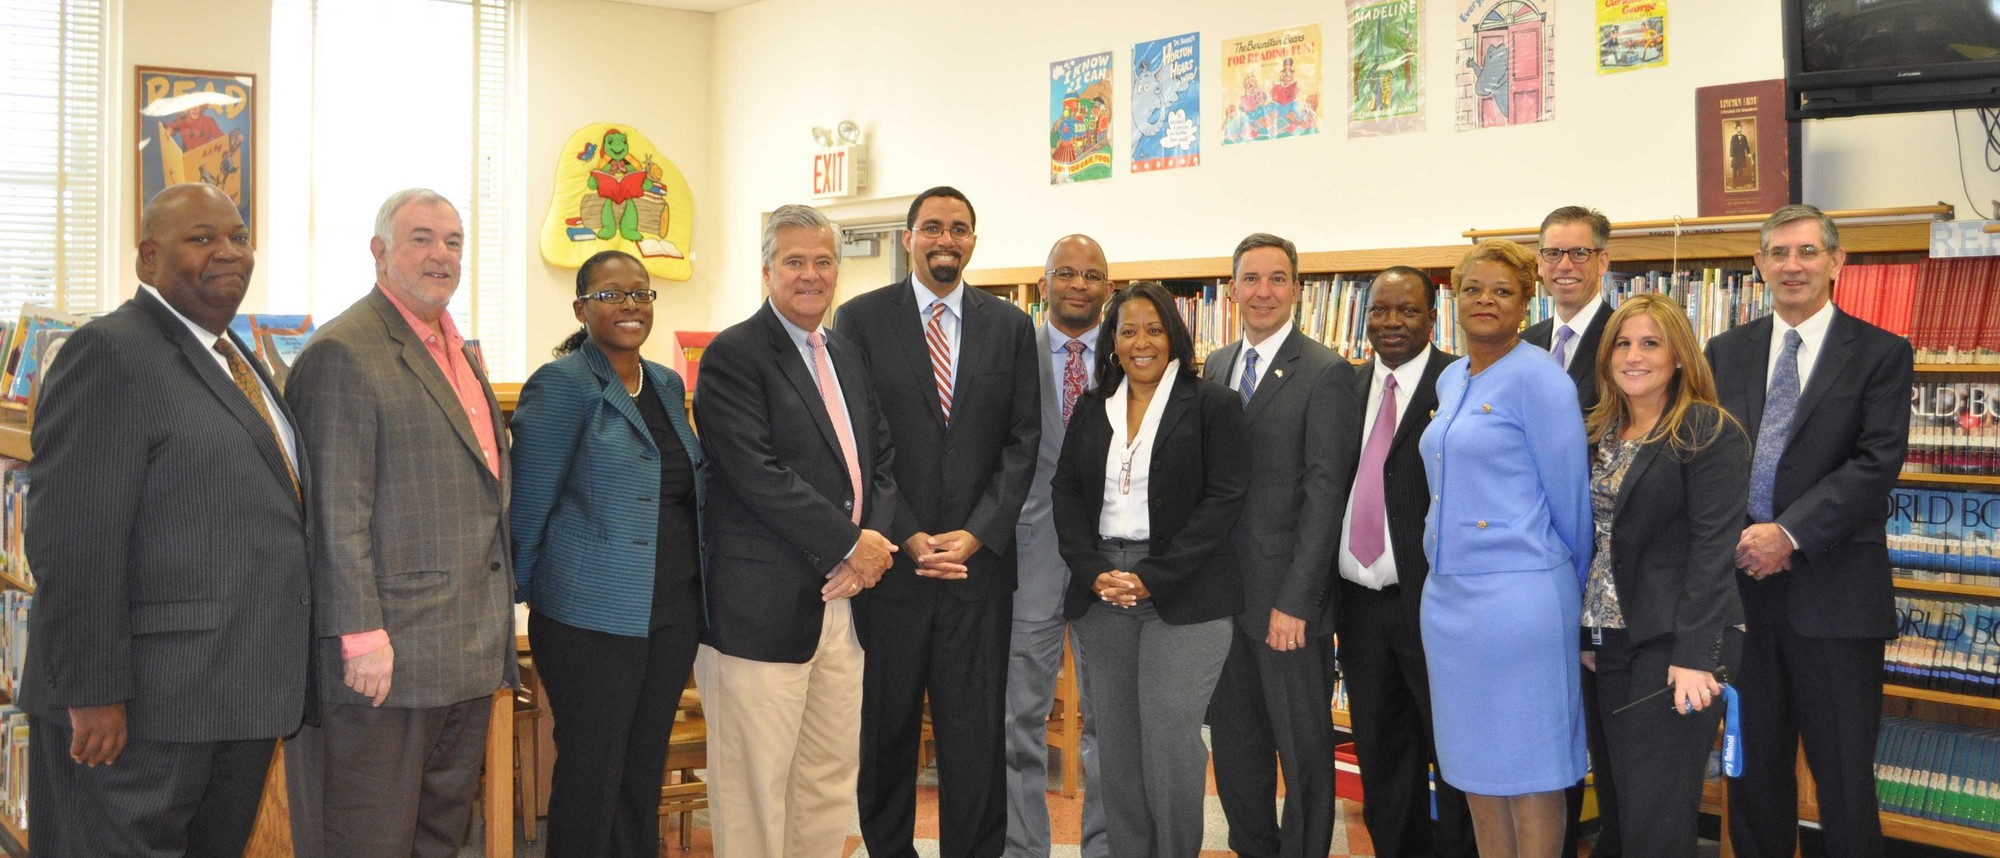 State Commissioner of Education Dr. John B. King Jr., center, gathered for a photo with school district officials and board members on Sept. 9.